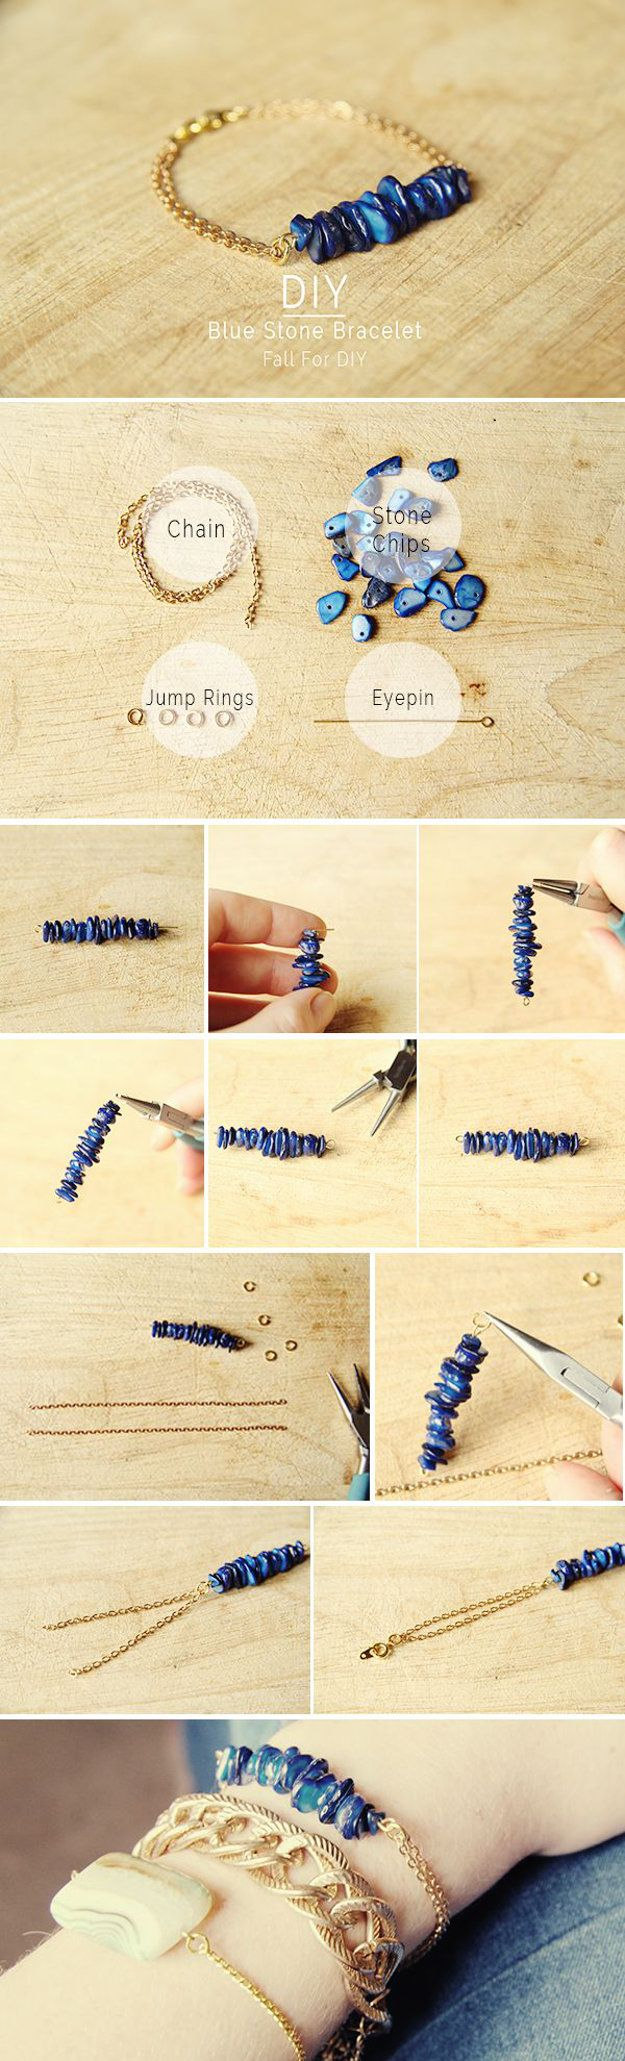 DIY Blue Stone Bracelet | The Perfect Gift to Make Your BFF for Graduation, Based on Her Zodiac Sign | http://www.hercampus.com/diy/parties-gifts/perfect-gift-make-your-bff-graduation-based-her-zodiac-sign